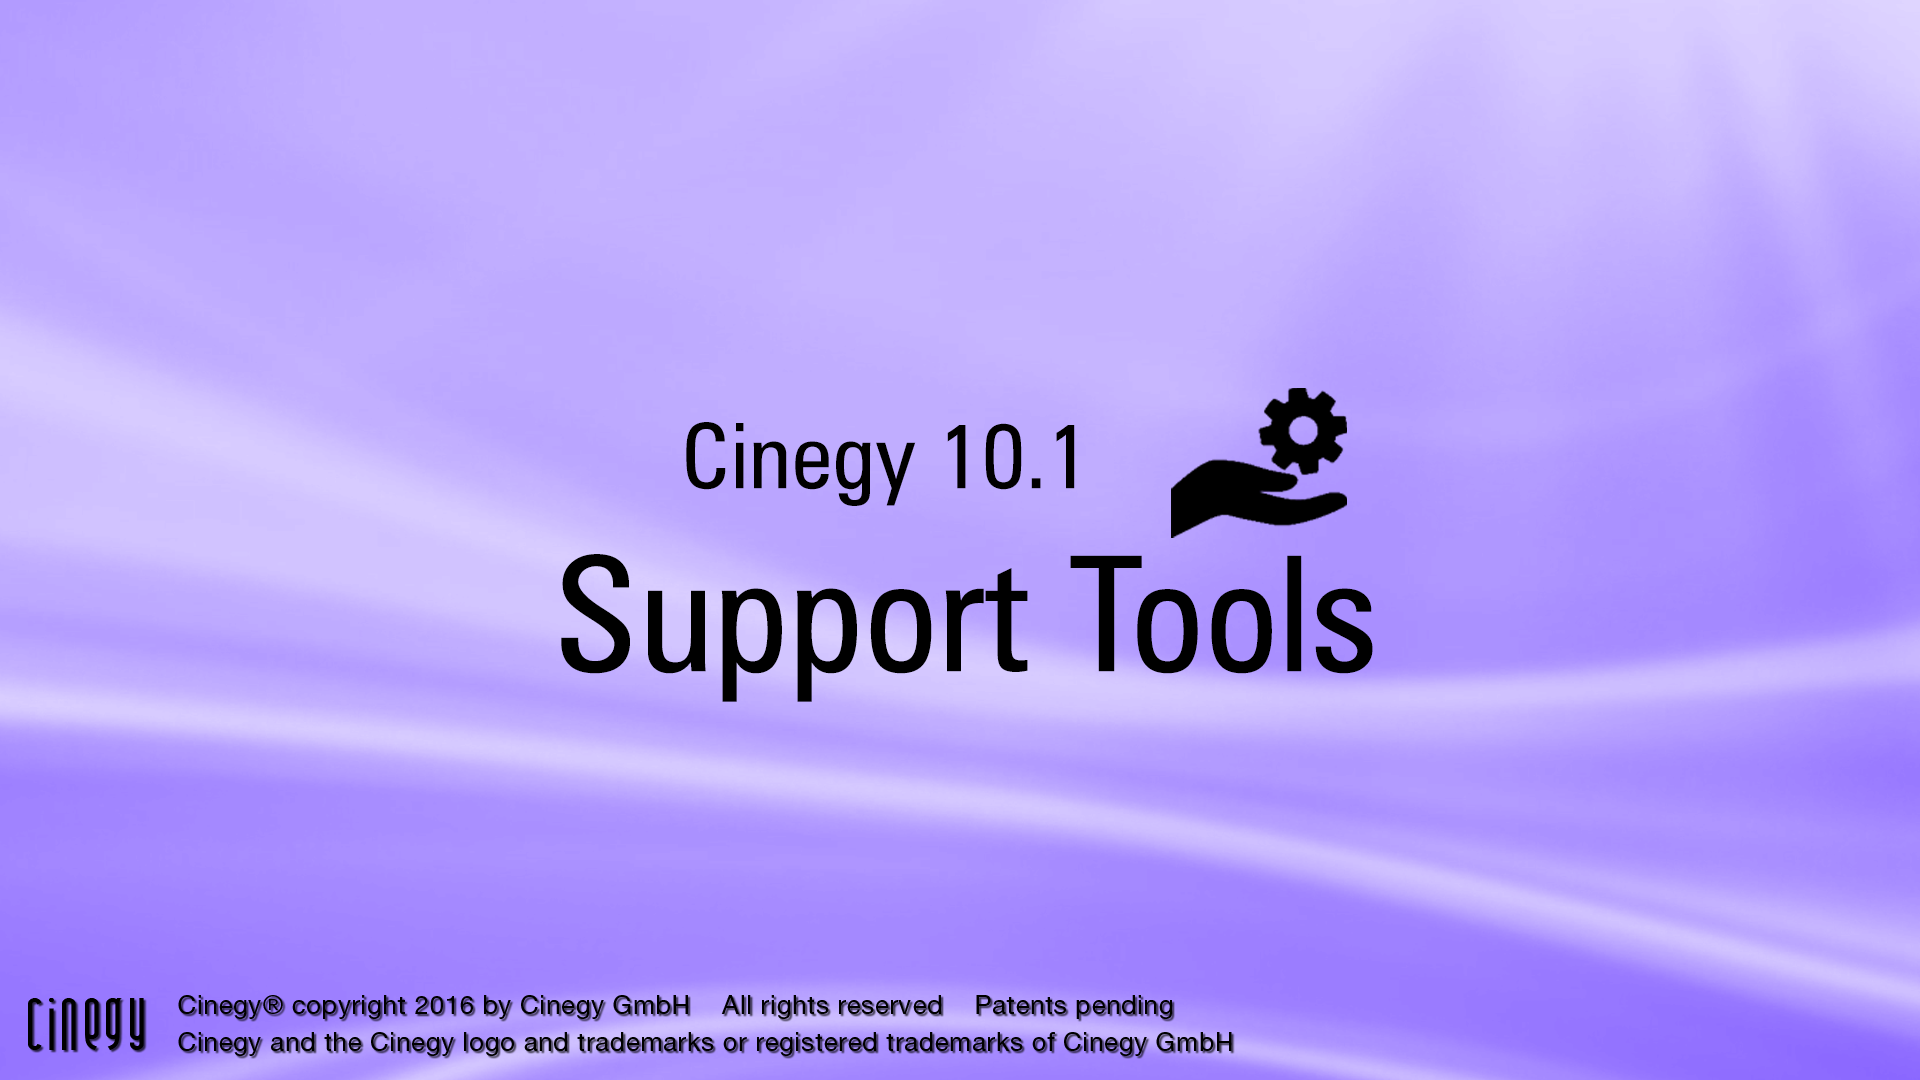 Cinegy Support Tool splash